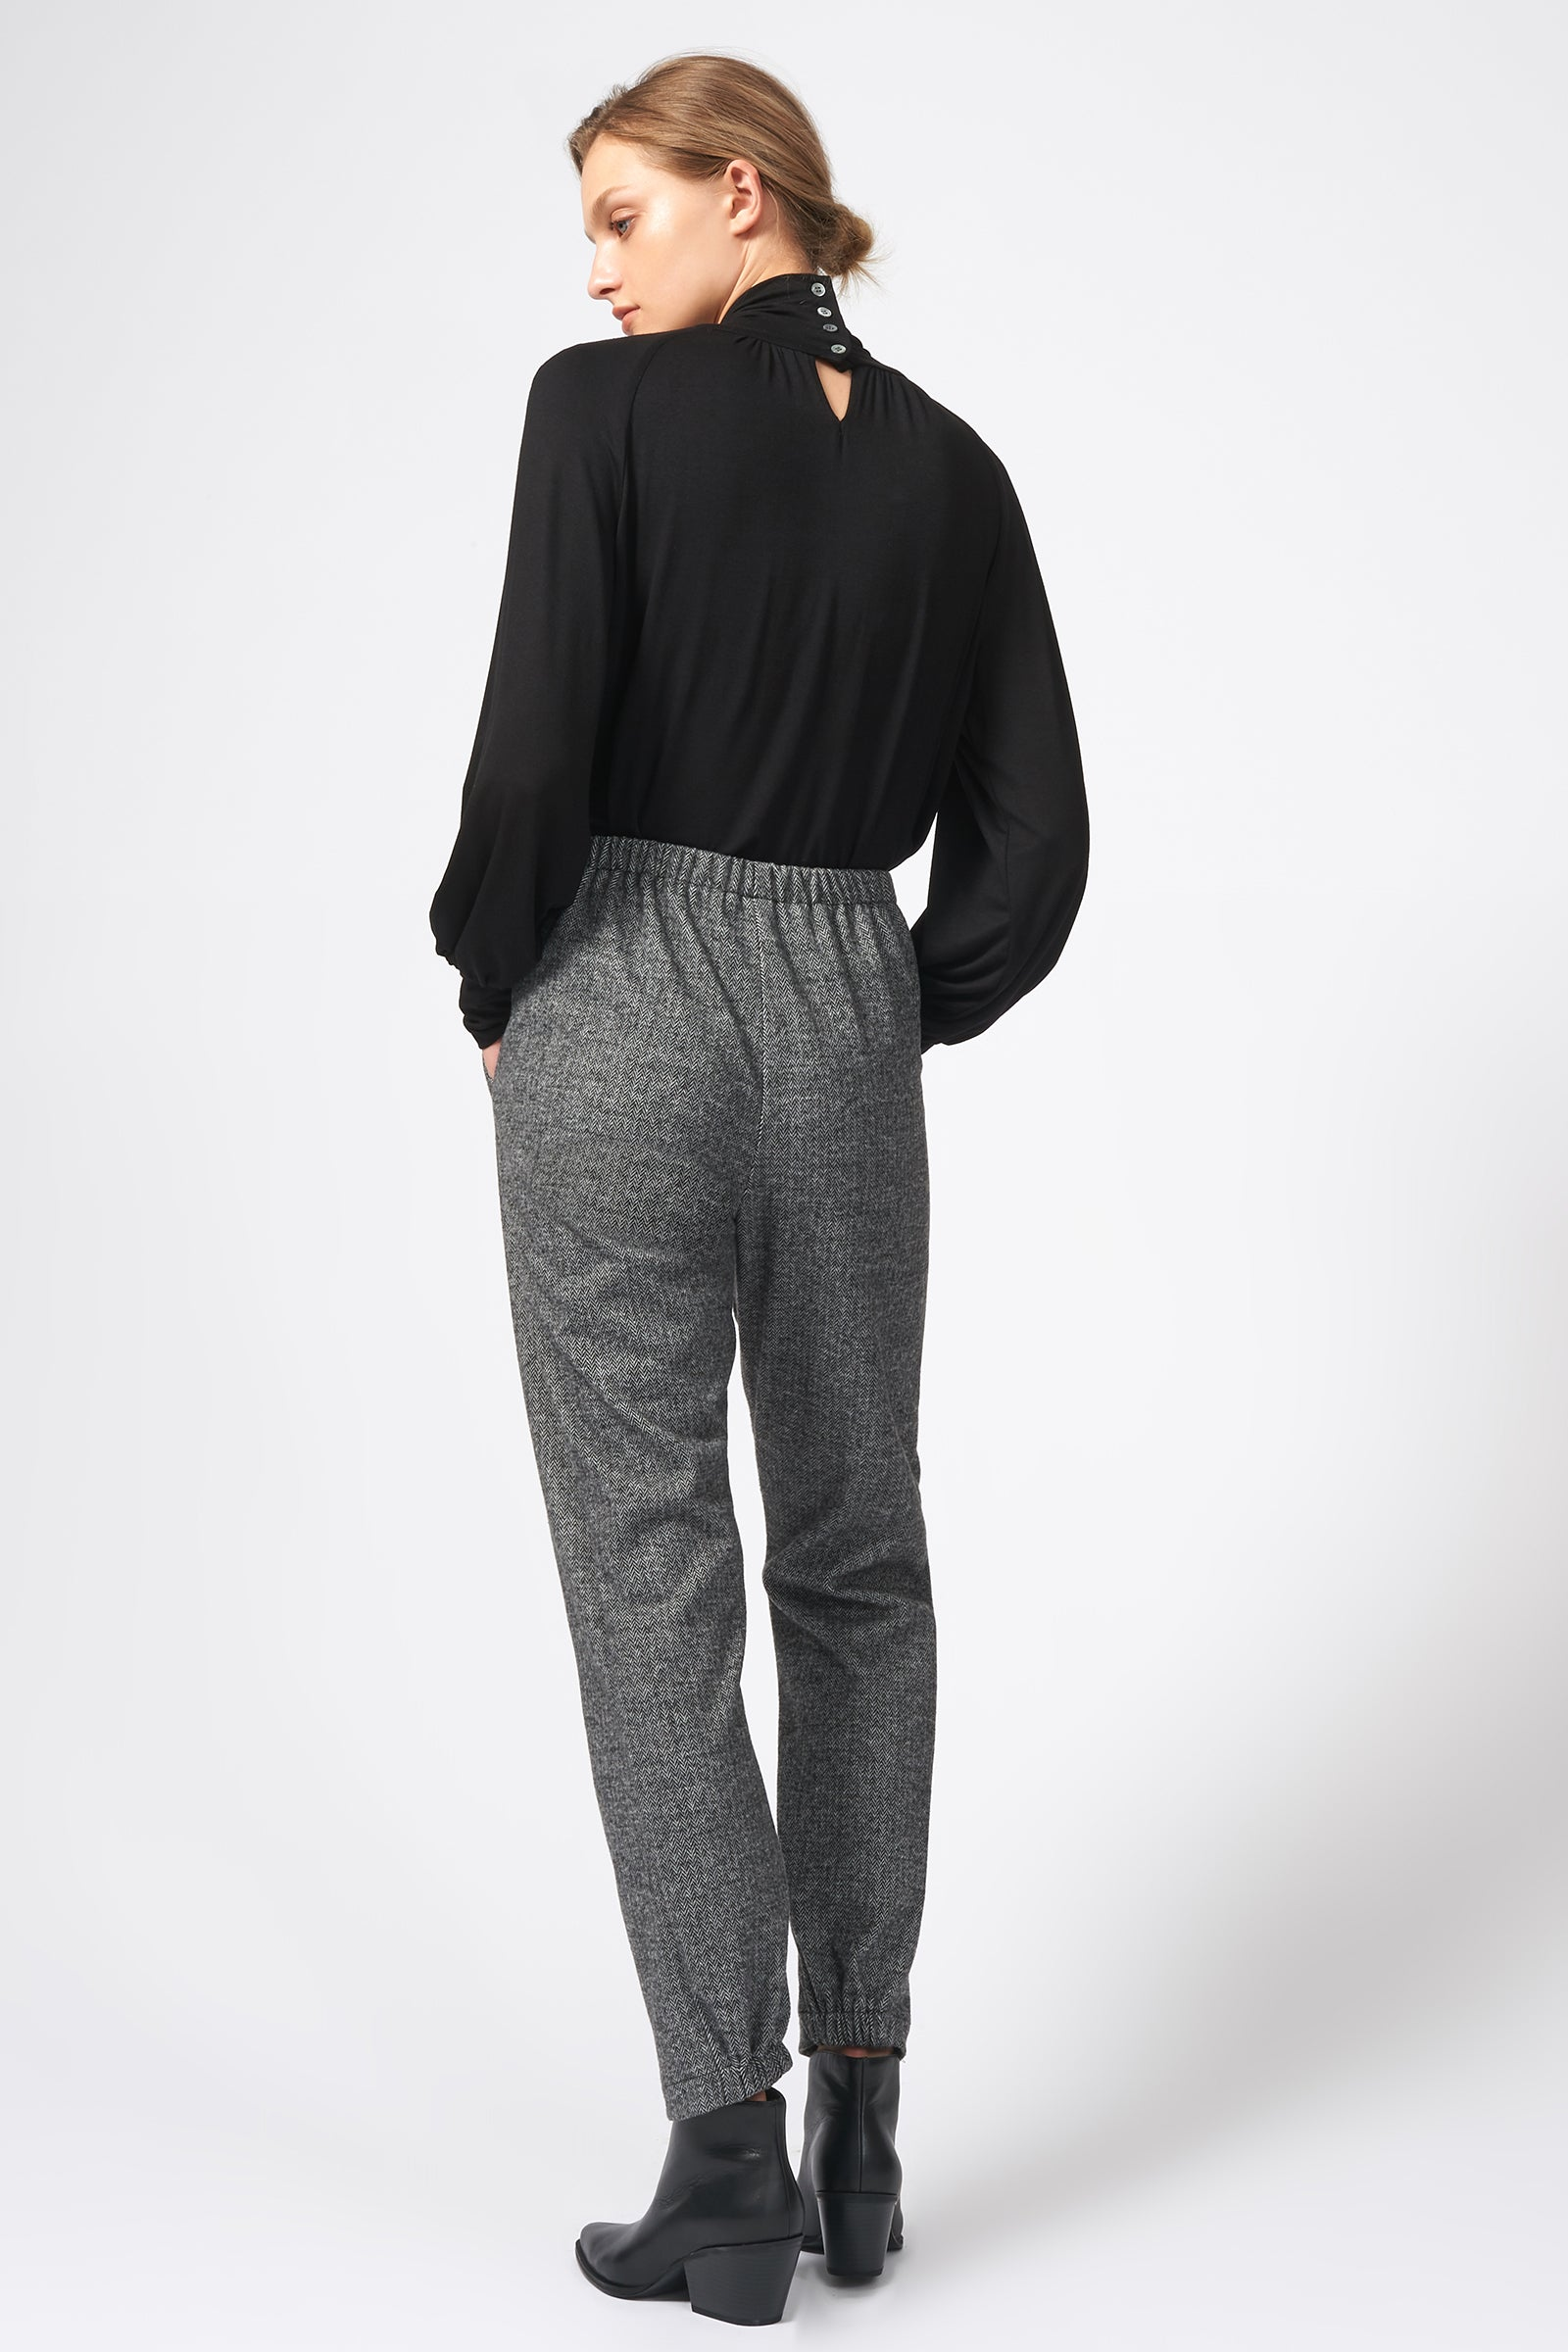 Kal Rieman Angle Seam Jogger in Black Chevron on Model Full Front View